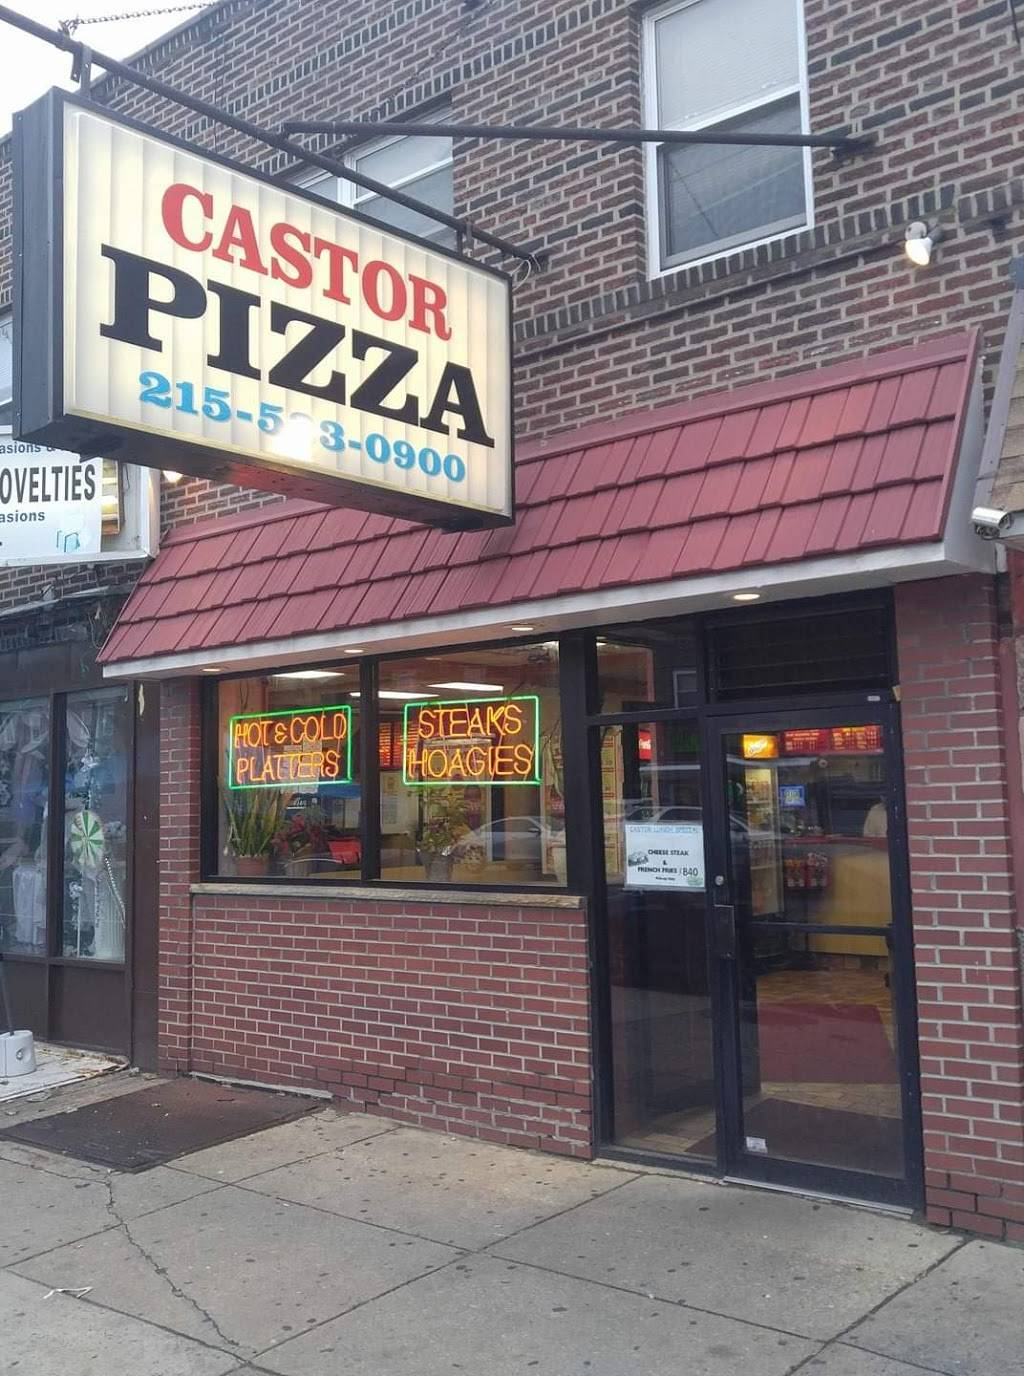 Castor Pizza | restaurant | 6038 Castor Ave, Philadelphia, PA 19149, USA | 2155330900 OR +1 215-533-0900